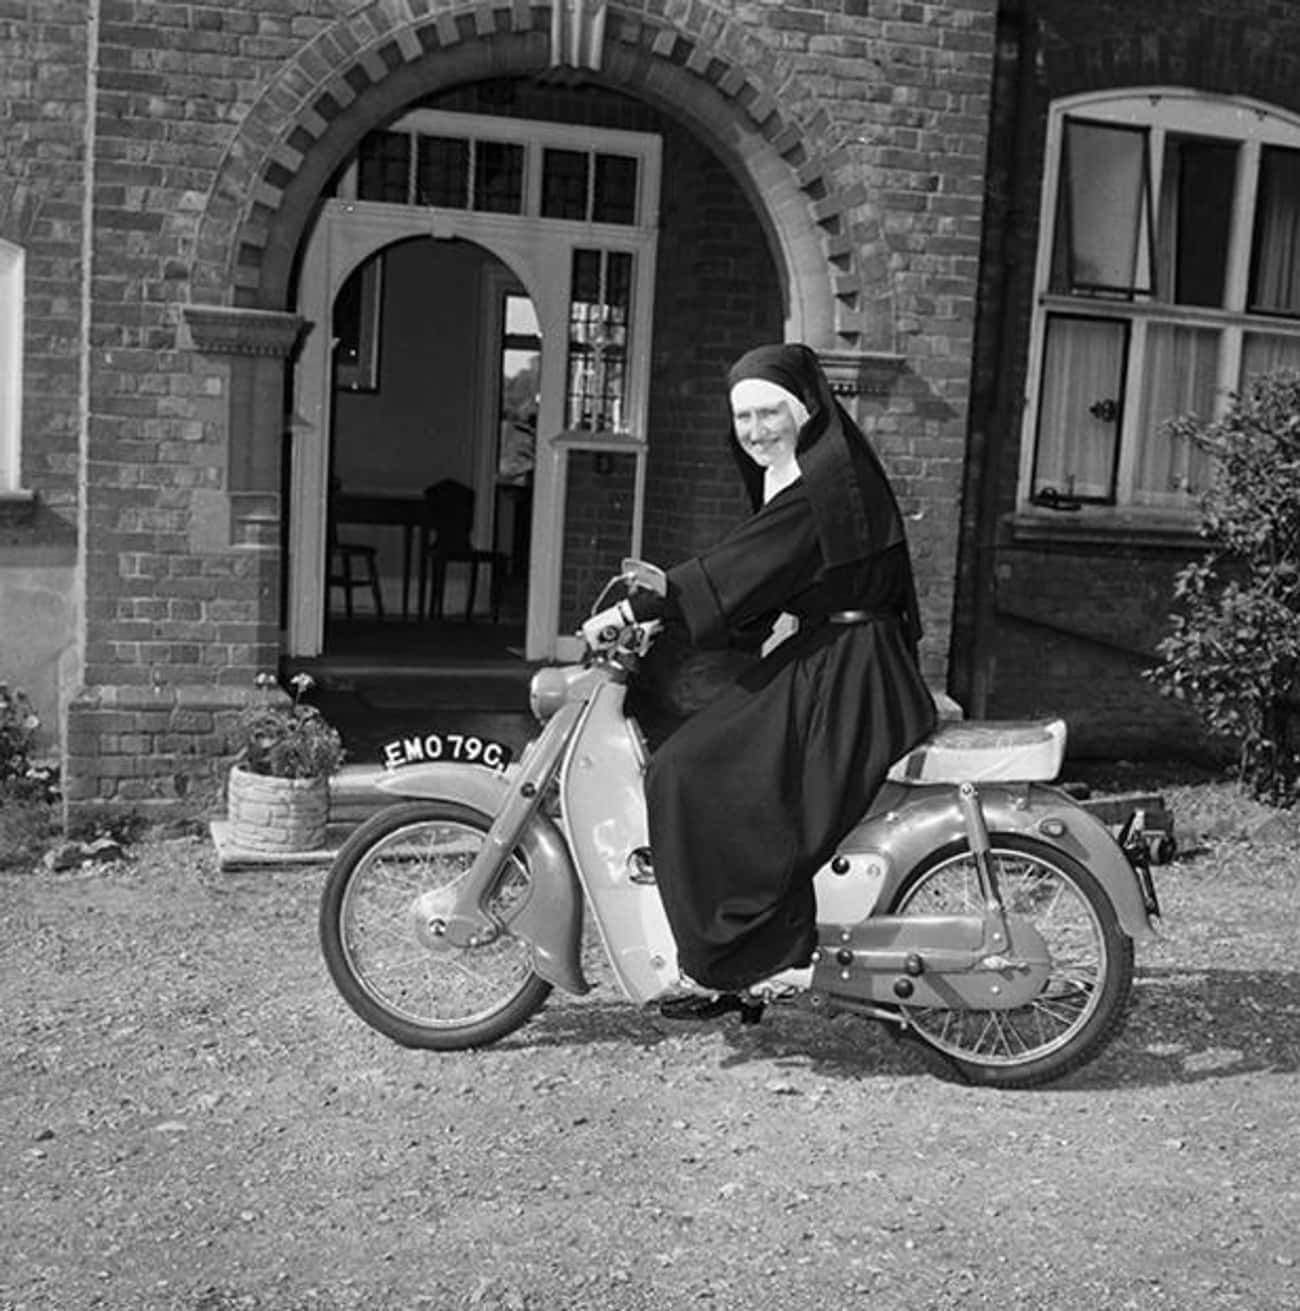 Sister Mary Bernadette, Former is listed (or ranked) 1 on the list 16 Photos Of Nuns Living Life Just Like The Rest Of Us